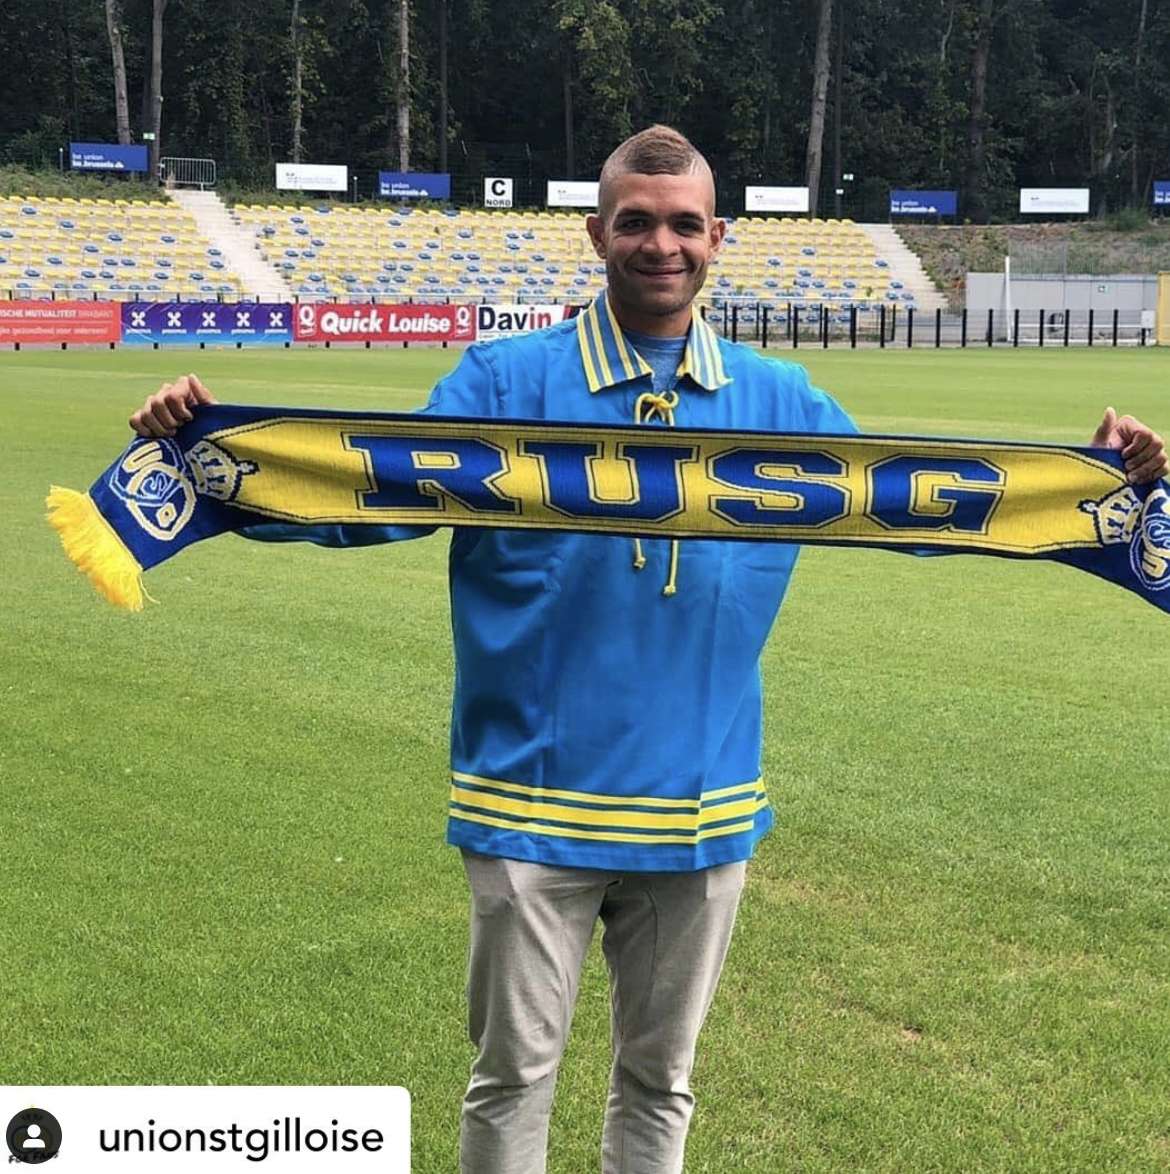 Mauricio Chejov holding up a Union scarf designed by nope design